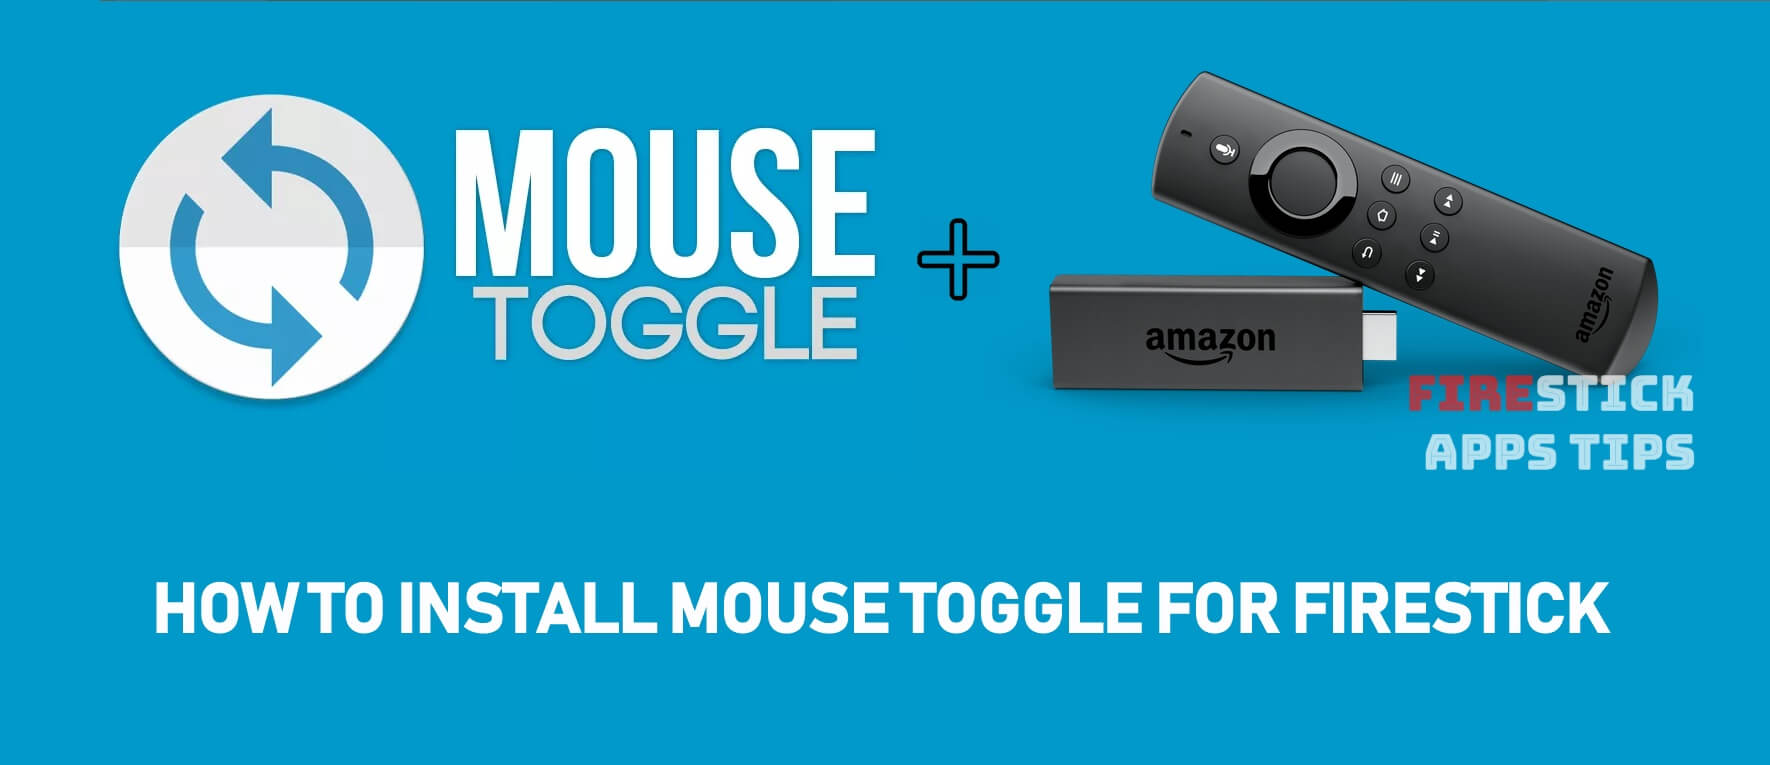 How to Install Mouse Toggle for Firestick / Fire TV